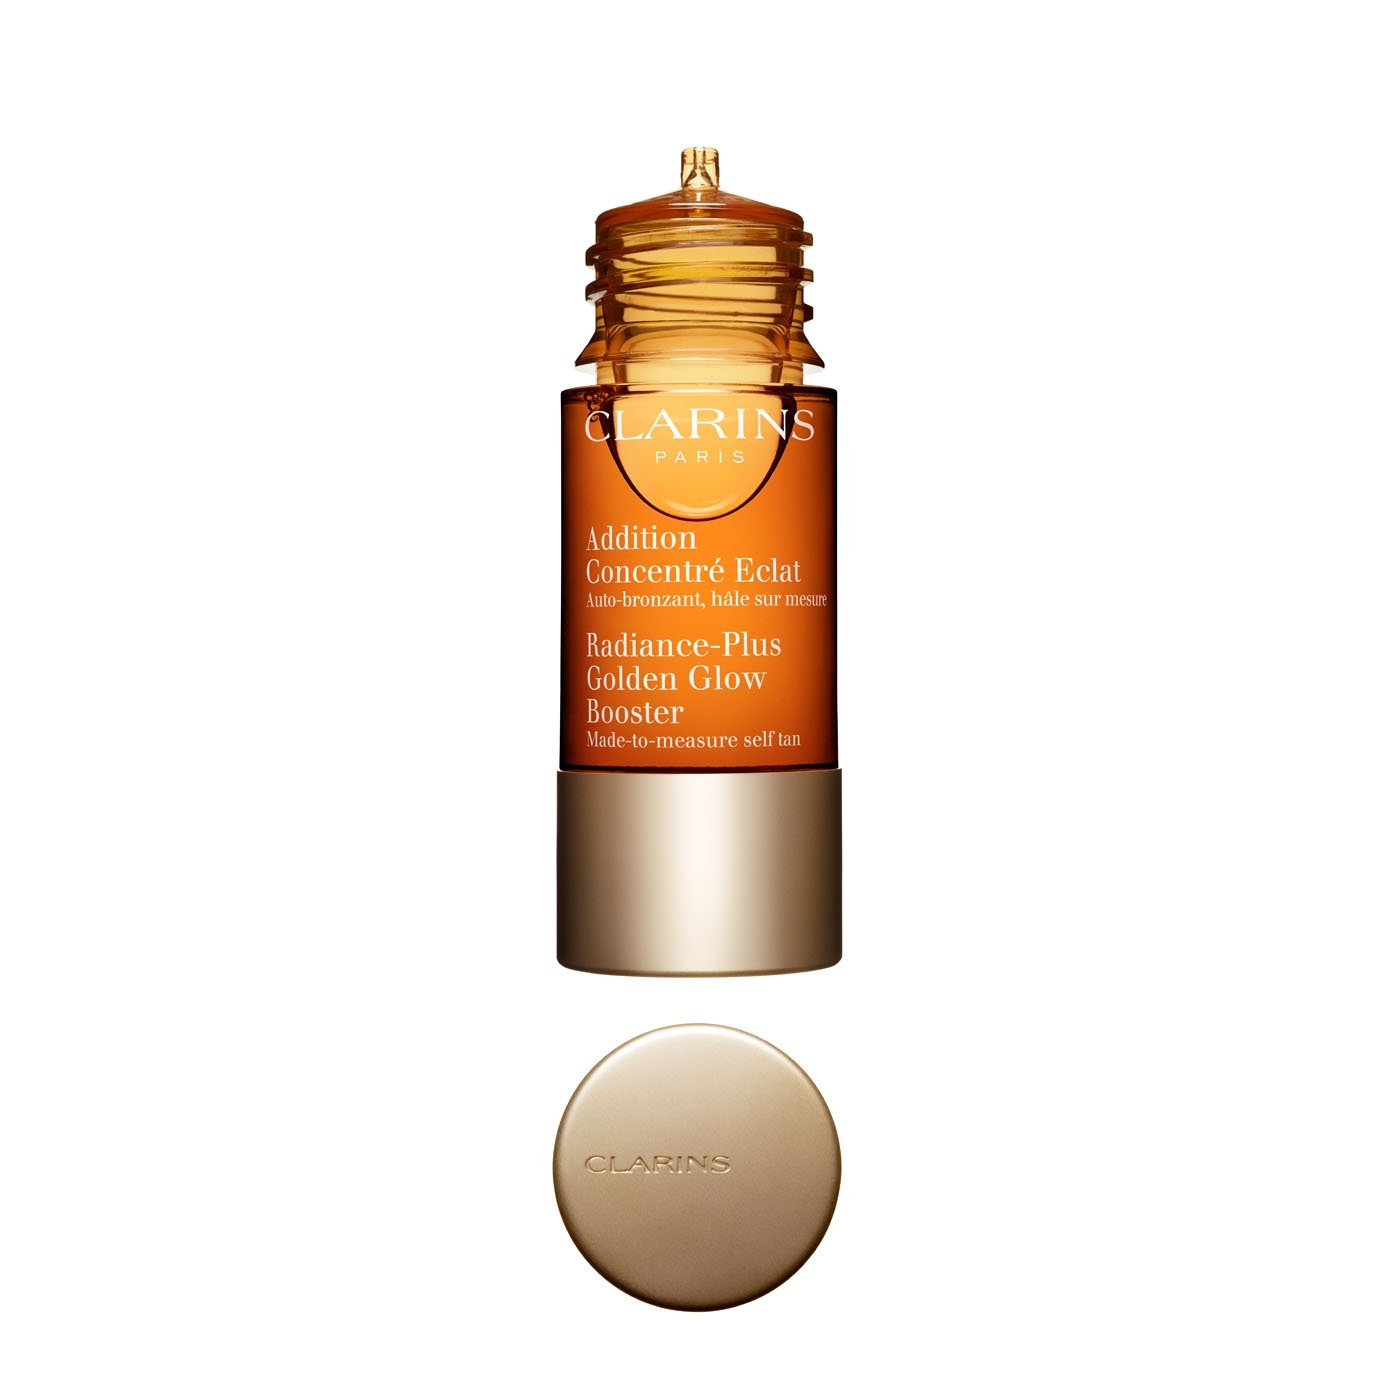 Clarins Radiance-Plus Golden Glow Booster Self Tanning Fluid, 0.5 Ounce by Clarins (Image #2)